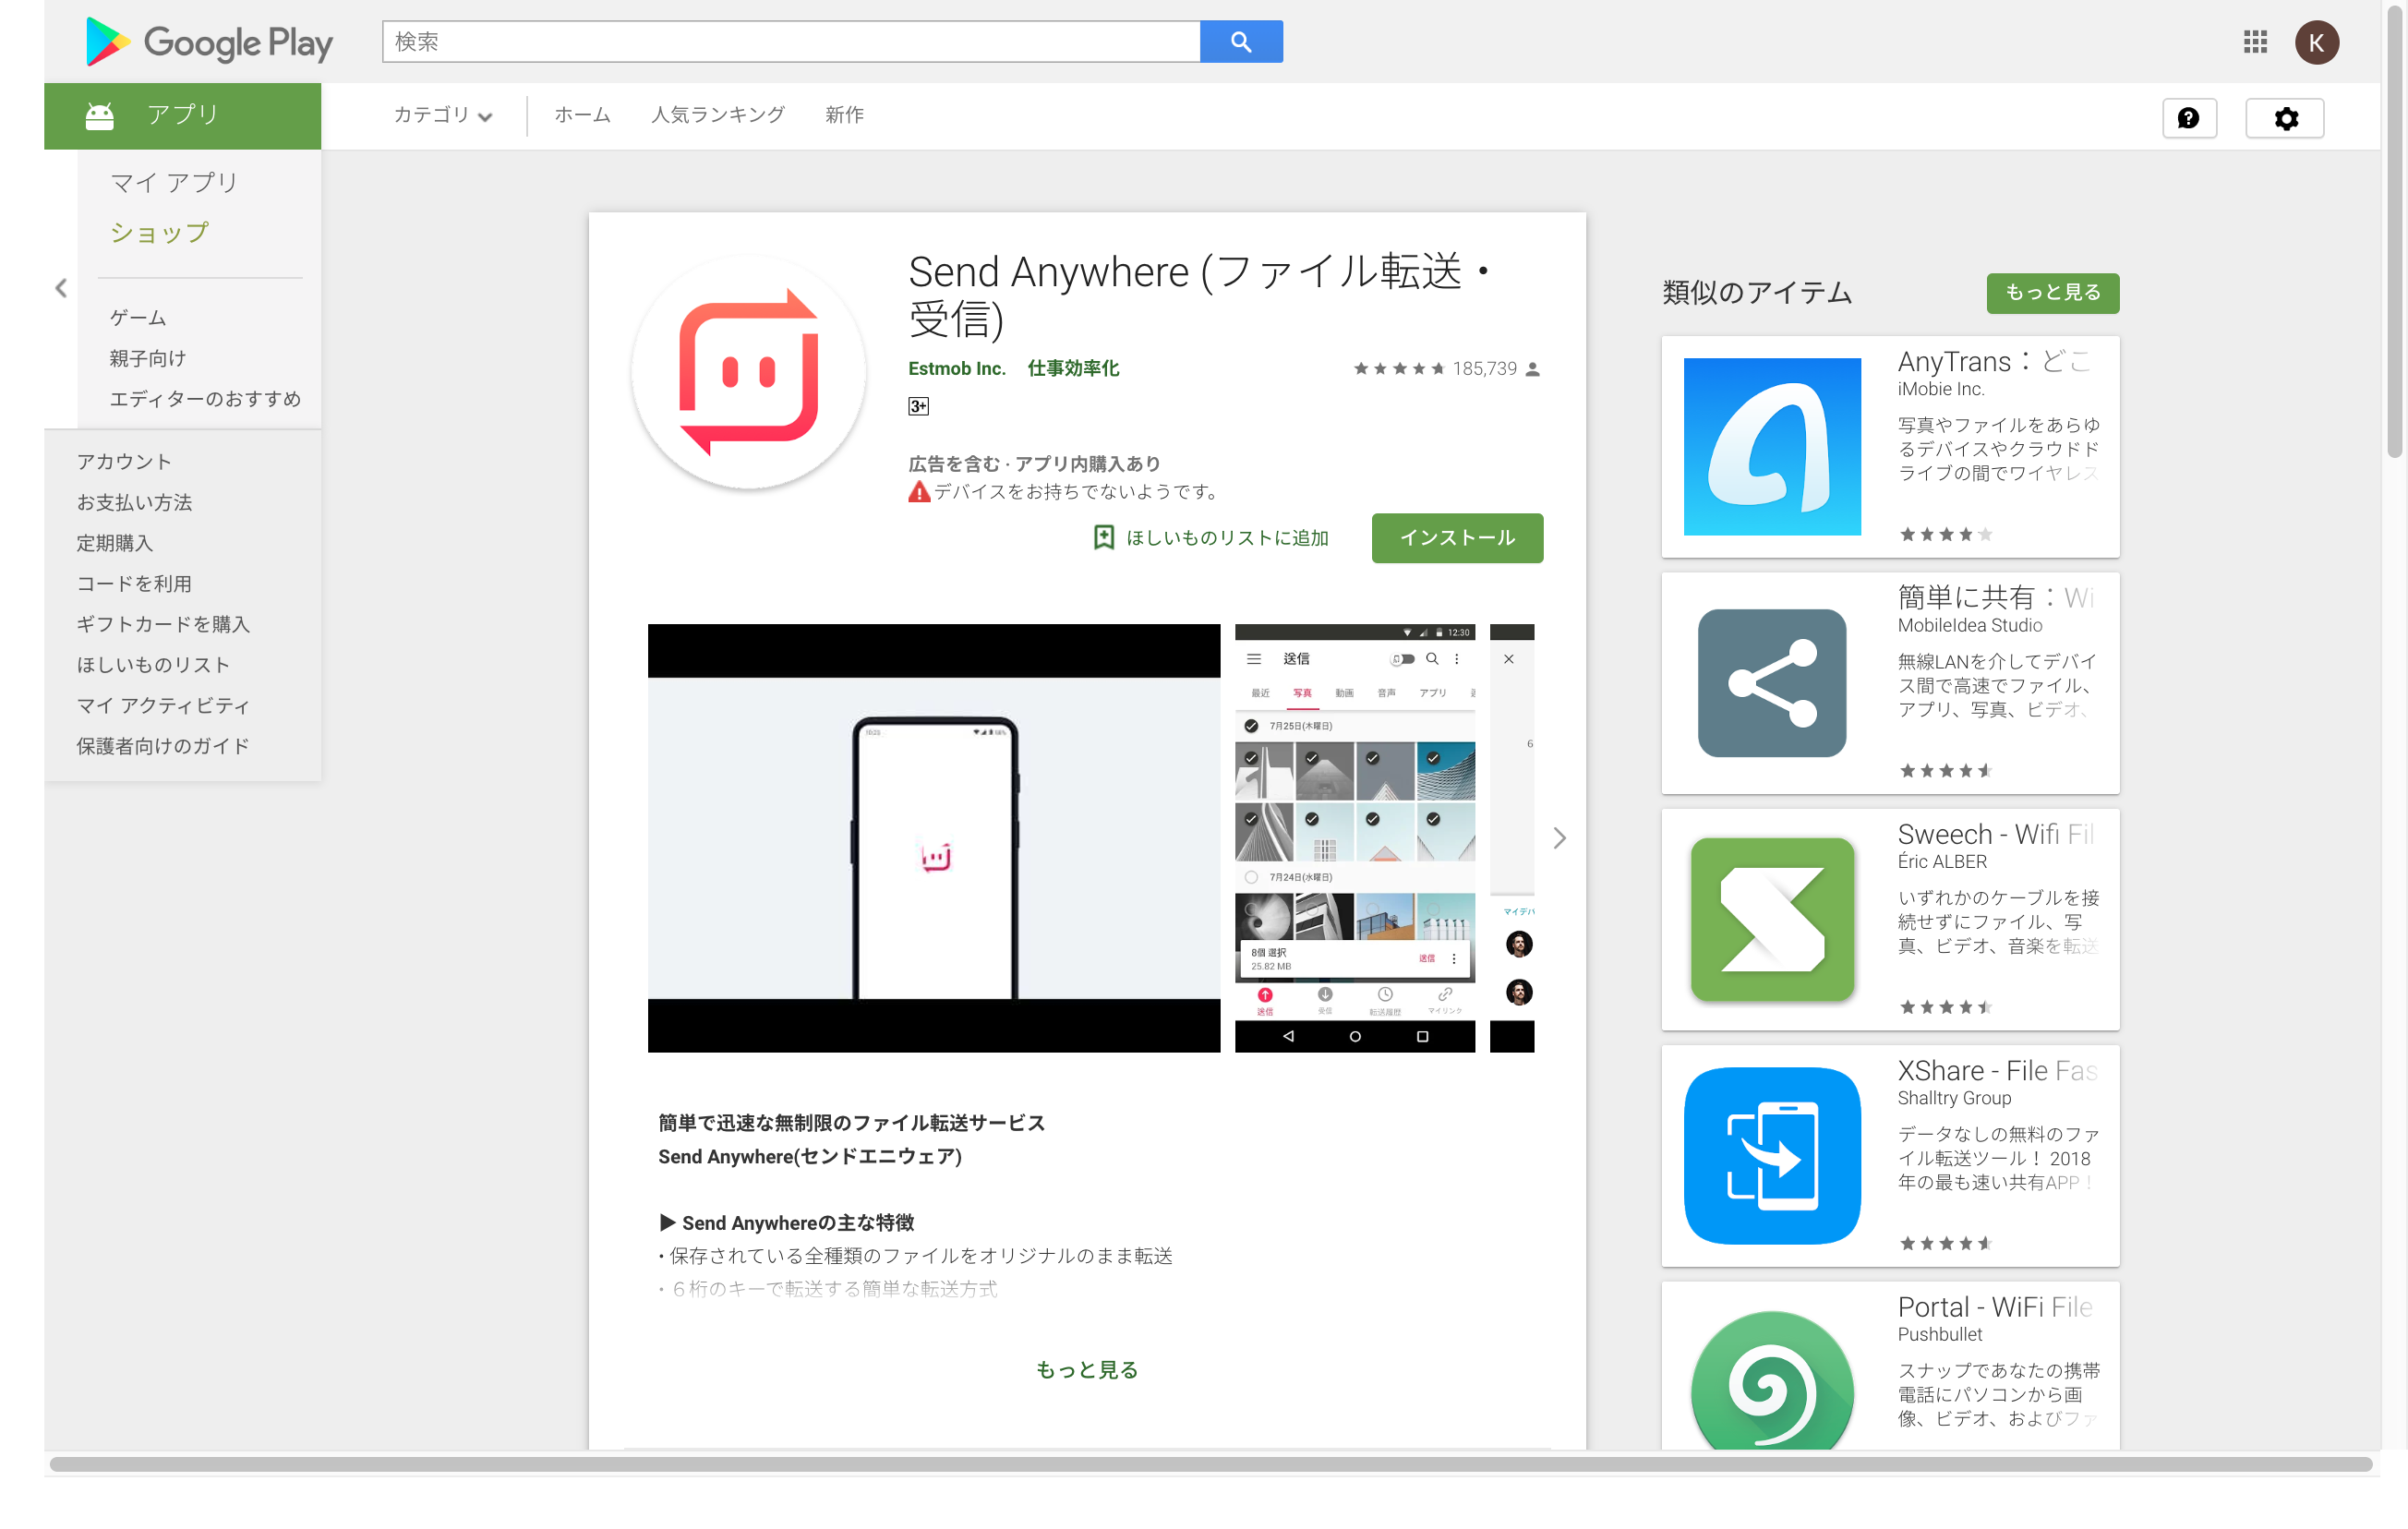 「Send Anywhere」Google Store